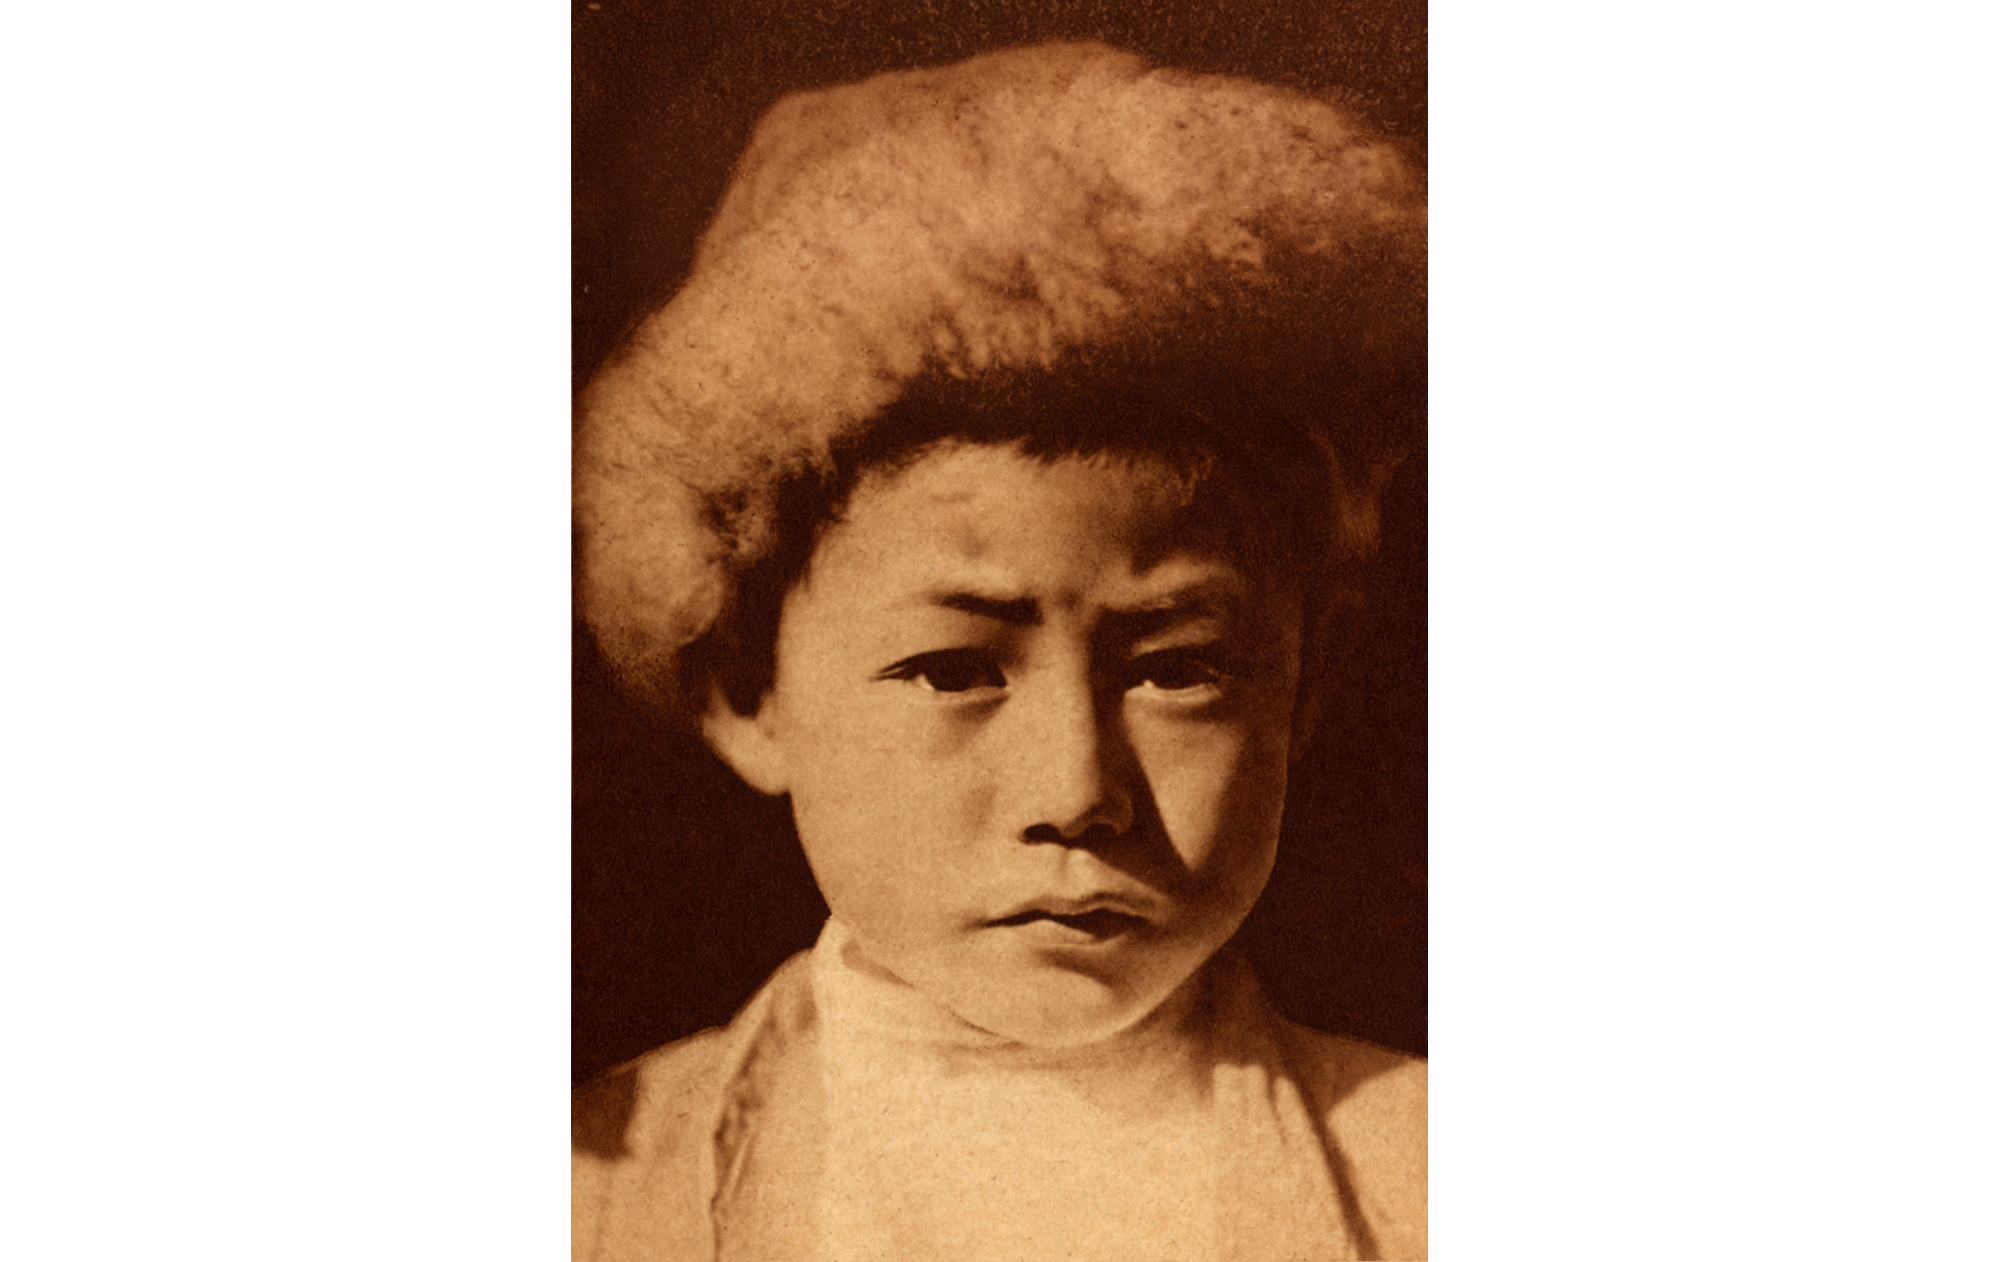 little-uzbek-boy-thumb-aispnb-105